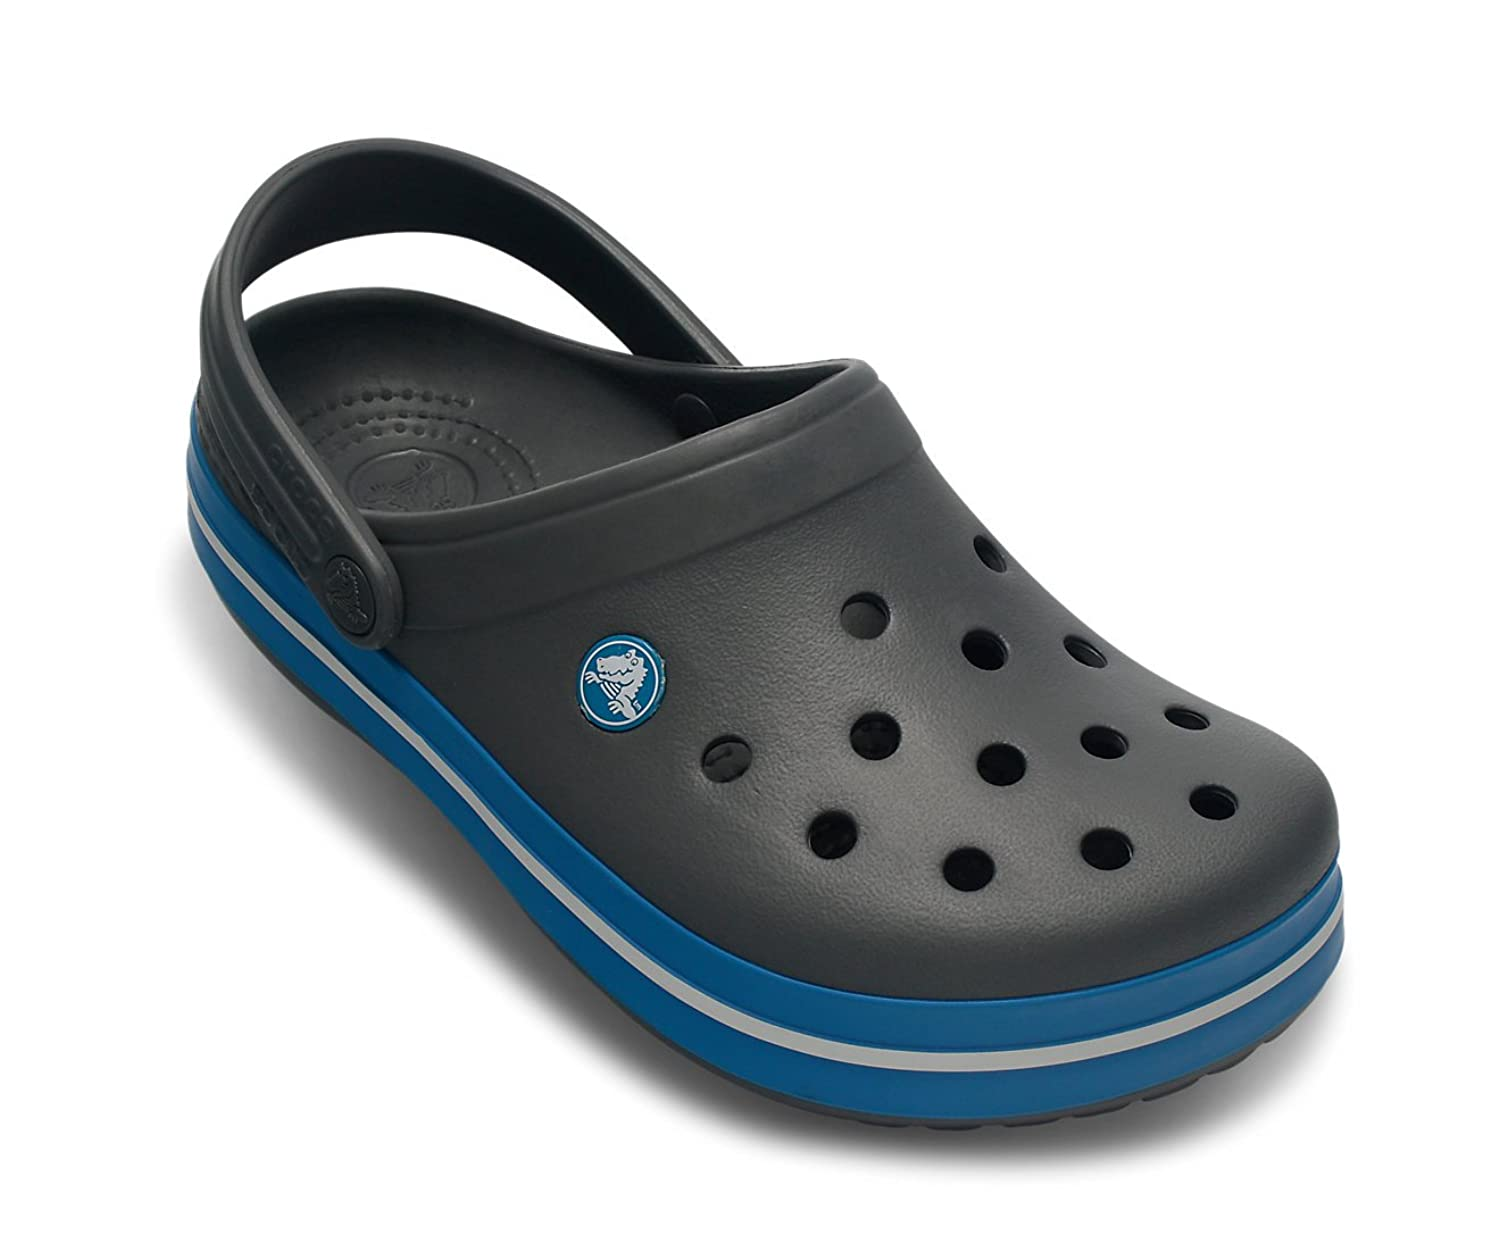 Crocs Crocband Shoe for Adults - Available in Many Colors!, Size: 8 D(M) US Mens / 10 B(M) US Womens, Color: Charcoal/Ocean